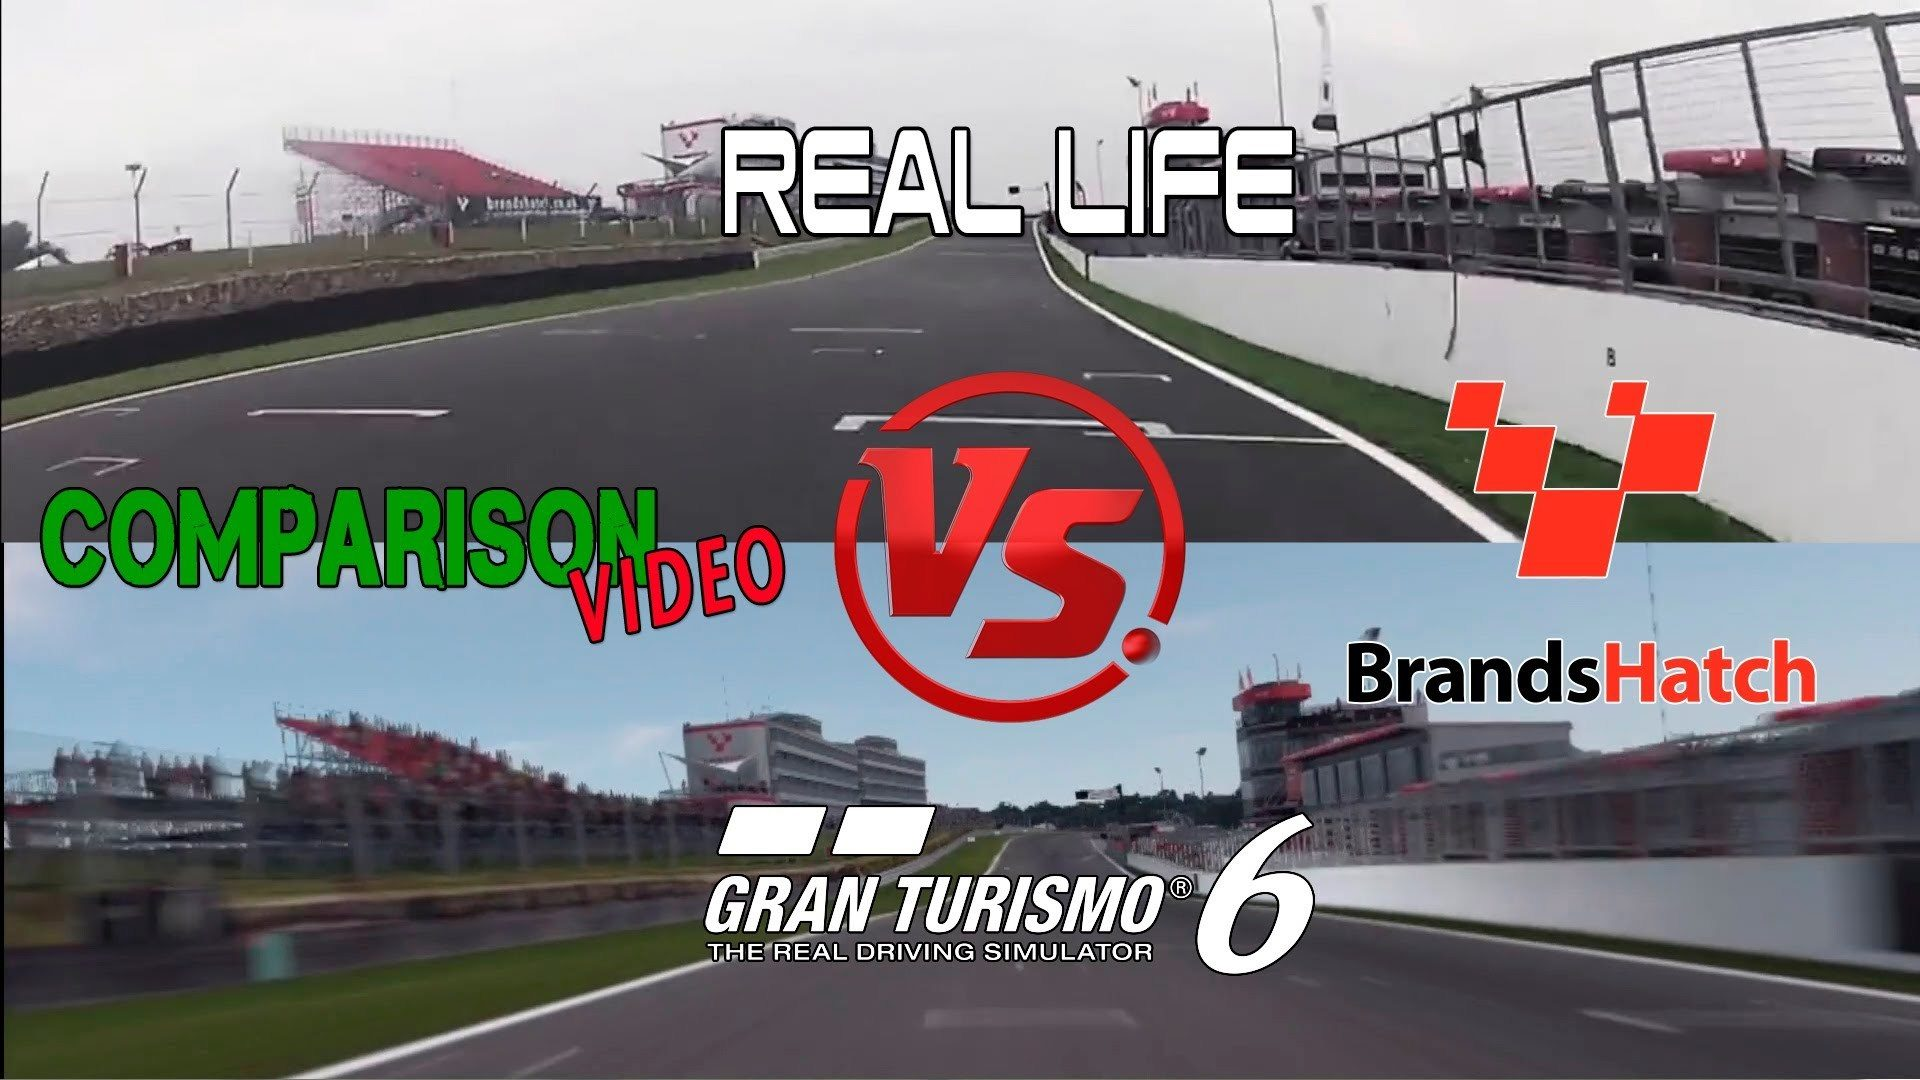 Gran Turismo 6 Vs Real Life Brands Hatch Video